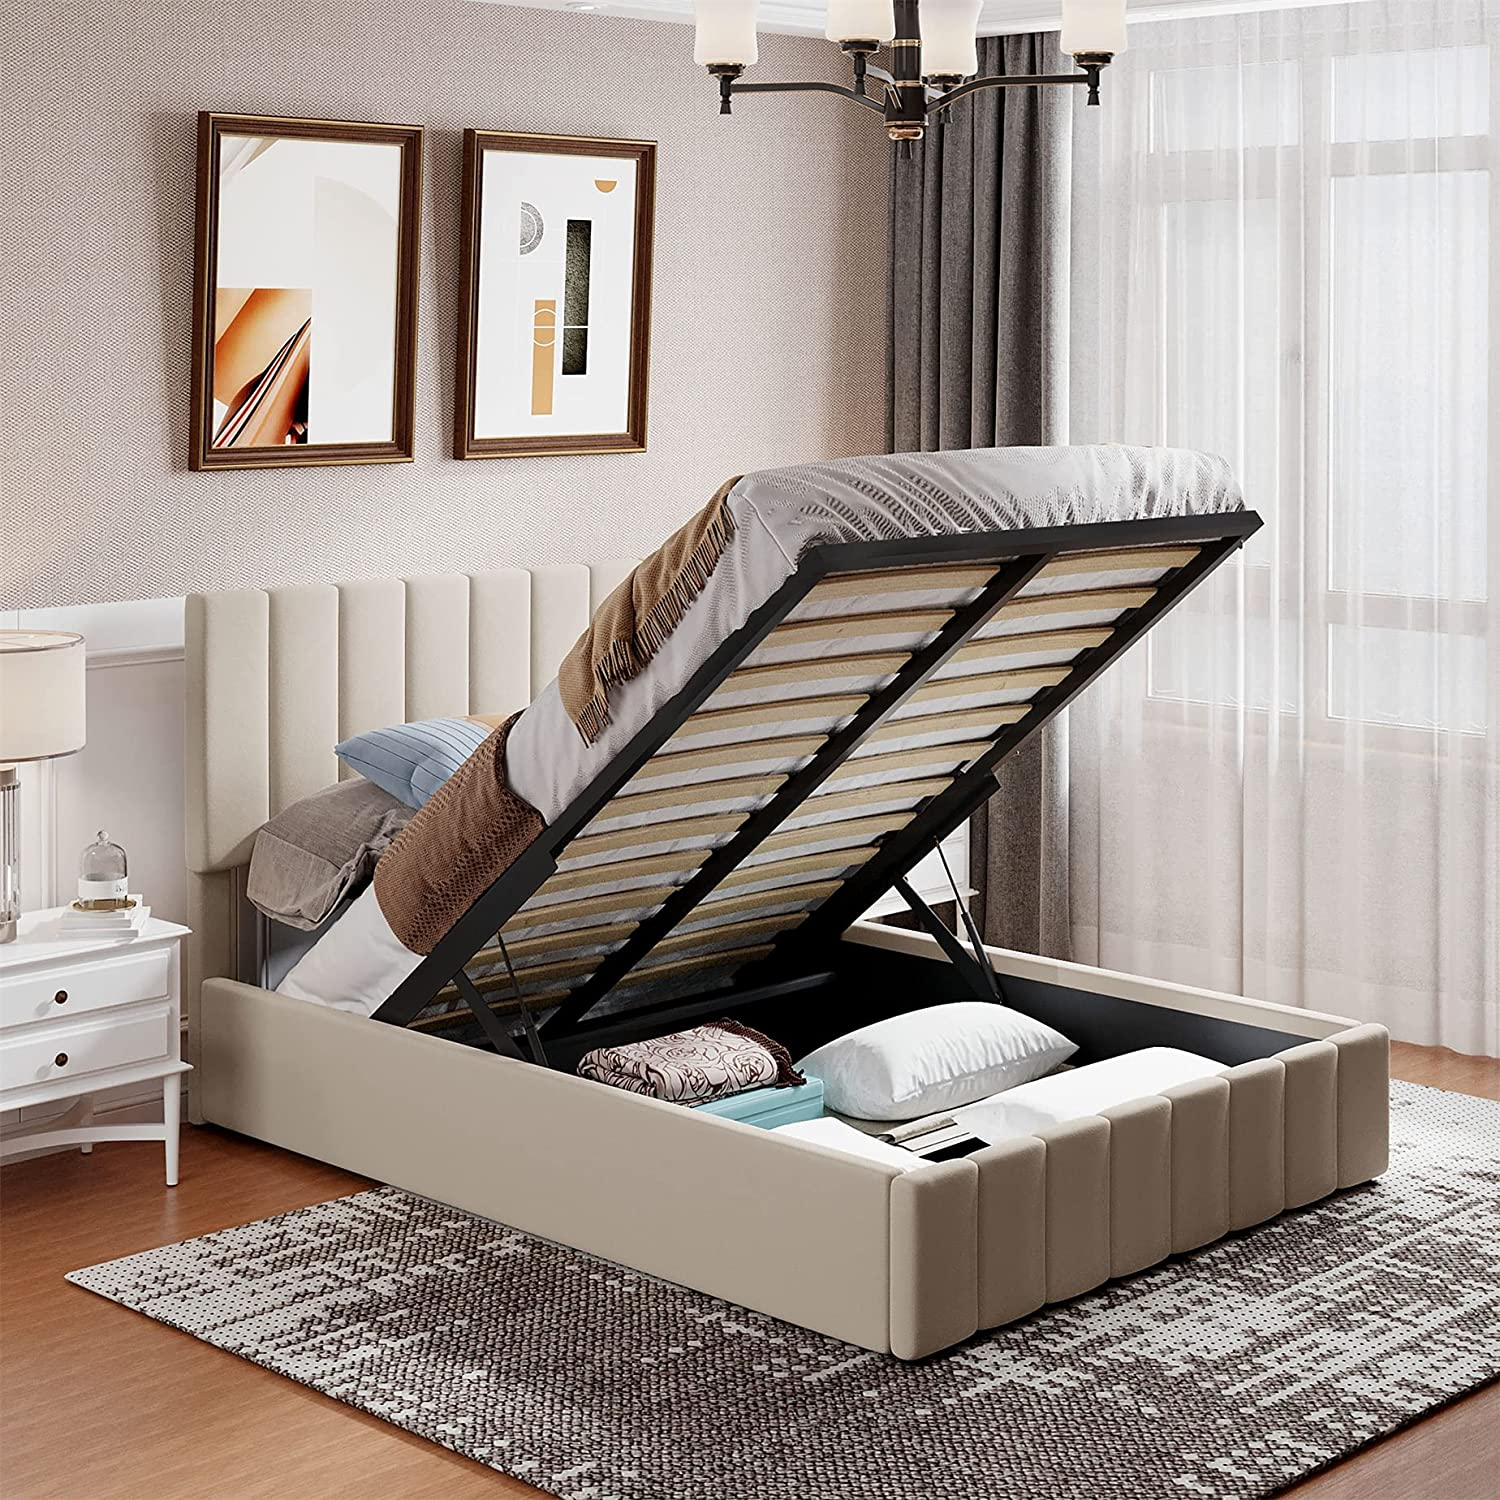 Upholstered Linen 5 popular Platform Bed with Wooden Slat and Max 52% OFF Support Unde